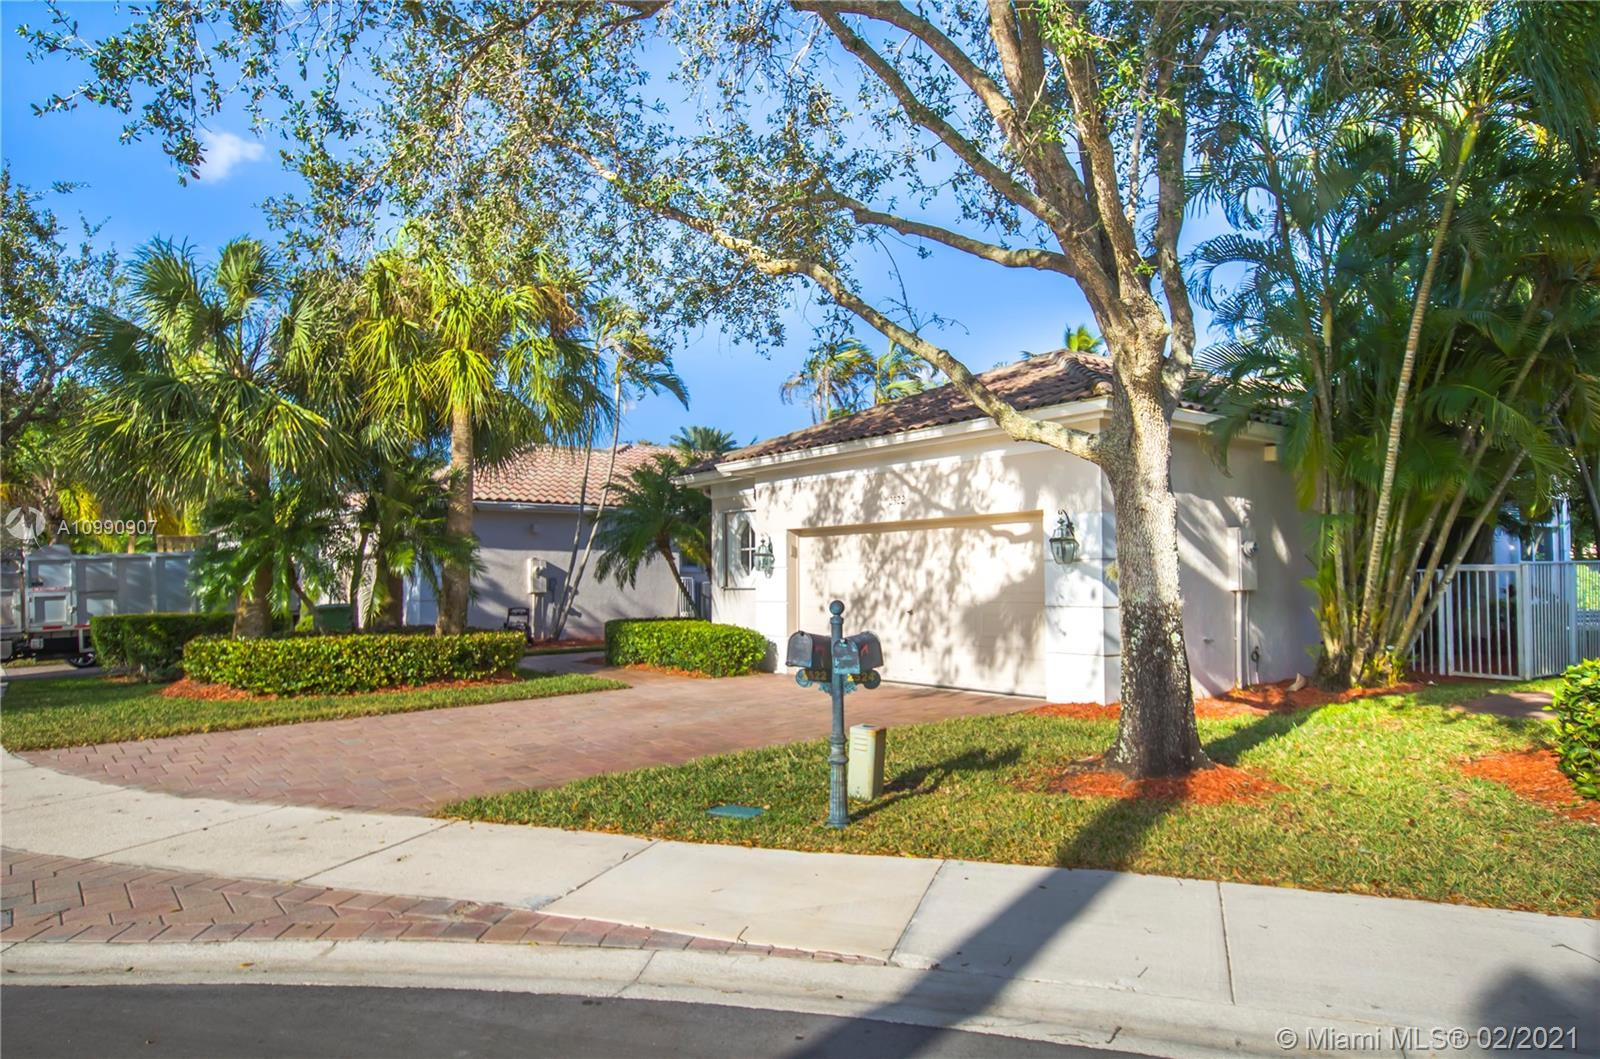 BEAUTIFULL HOME IN WESTON HILLS. FEATURES INCLUDE: UNIQUE FLOOR PLAN W/HALF-BATH FOR GUESTS, HARDWOOD FLOORS, CUSTOM KITCHEN, CABINEST W/ GRANITE TOPS & STAINLESS STEEL APPLIANCES, MARBLE IN MASTER BATH, CALIFORNIA CLOSETS,SURROUND SOUND SYSTEM INSIDE & OUT, ACCORDION HURRICANE SHUTTERS.